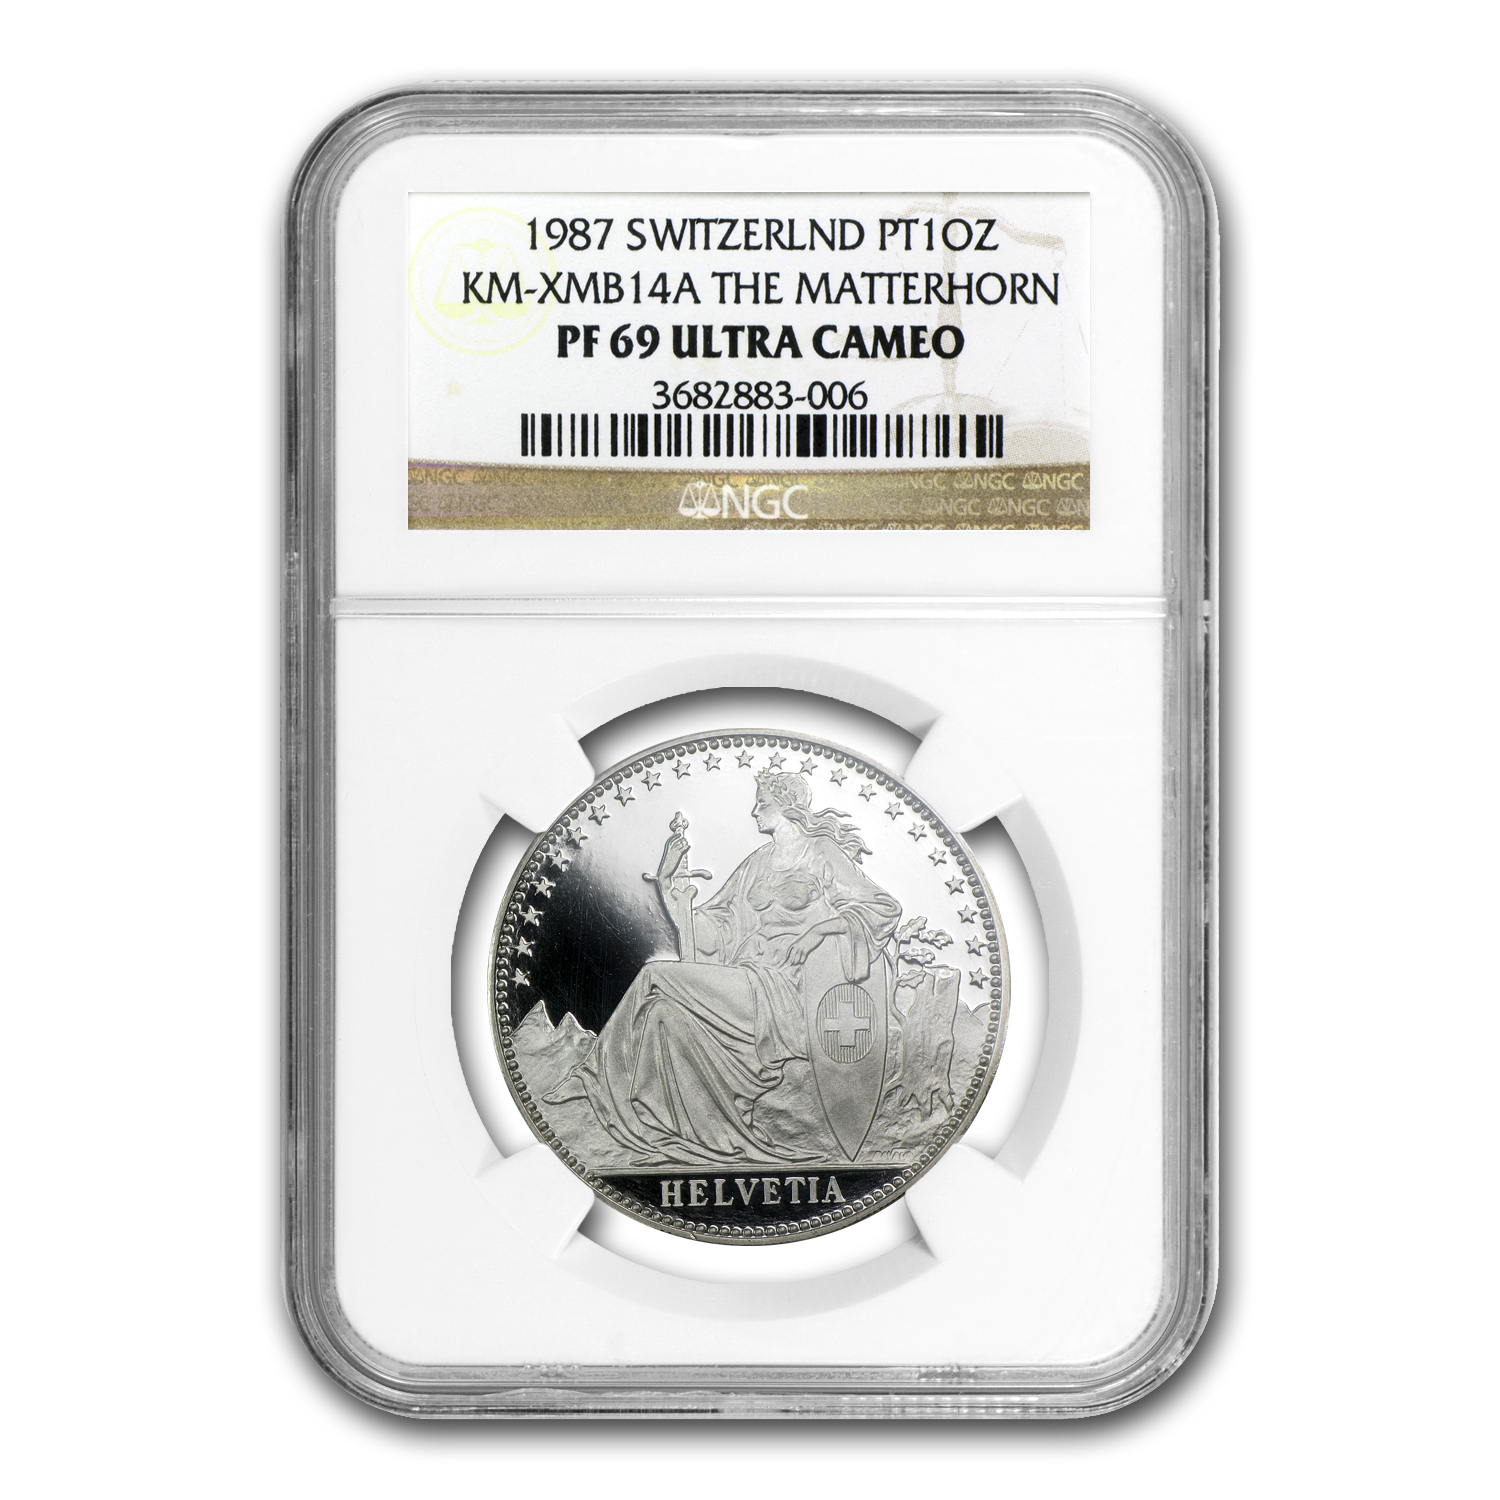 1987 1 oz Proof Swiss Platinum Matterhorn PF-69 NGC